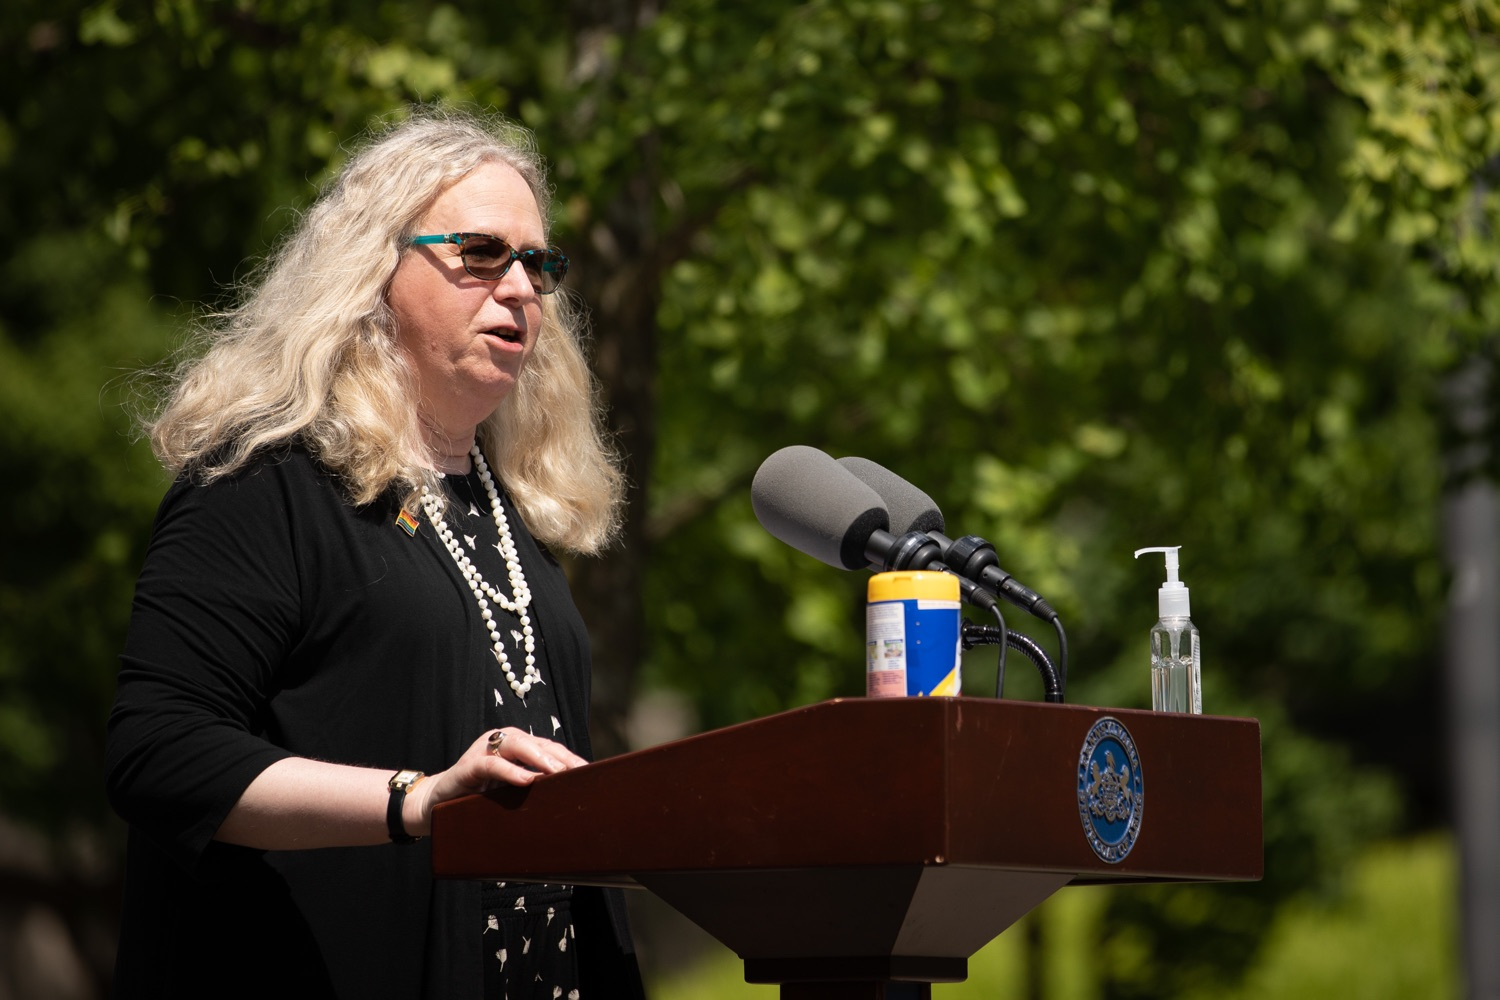 """<a href=""""https://filesource.wostreaming.net/commonwealthofpa/photo/18093_gov-healthcare_workers_dz_08.jpg"""" target=""""_blank"""">⇣Download Photo<br></a>Sec. of Health Dr. Rachel Levine speaking during her visit to Milton S. Hershey Medical Center. As the commonwealth continues its measured, phased reopening and COVID-19 case counts continue to decline, Governor Tom Wolf visited Penn State Milton S. Hershey Medical Center today to thank staff and learn more about how the facility is handling the pandemic and preparing for a possible resurgence in the fall.  Harrisburg, PA  June 24, 2020"""